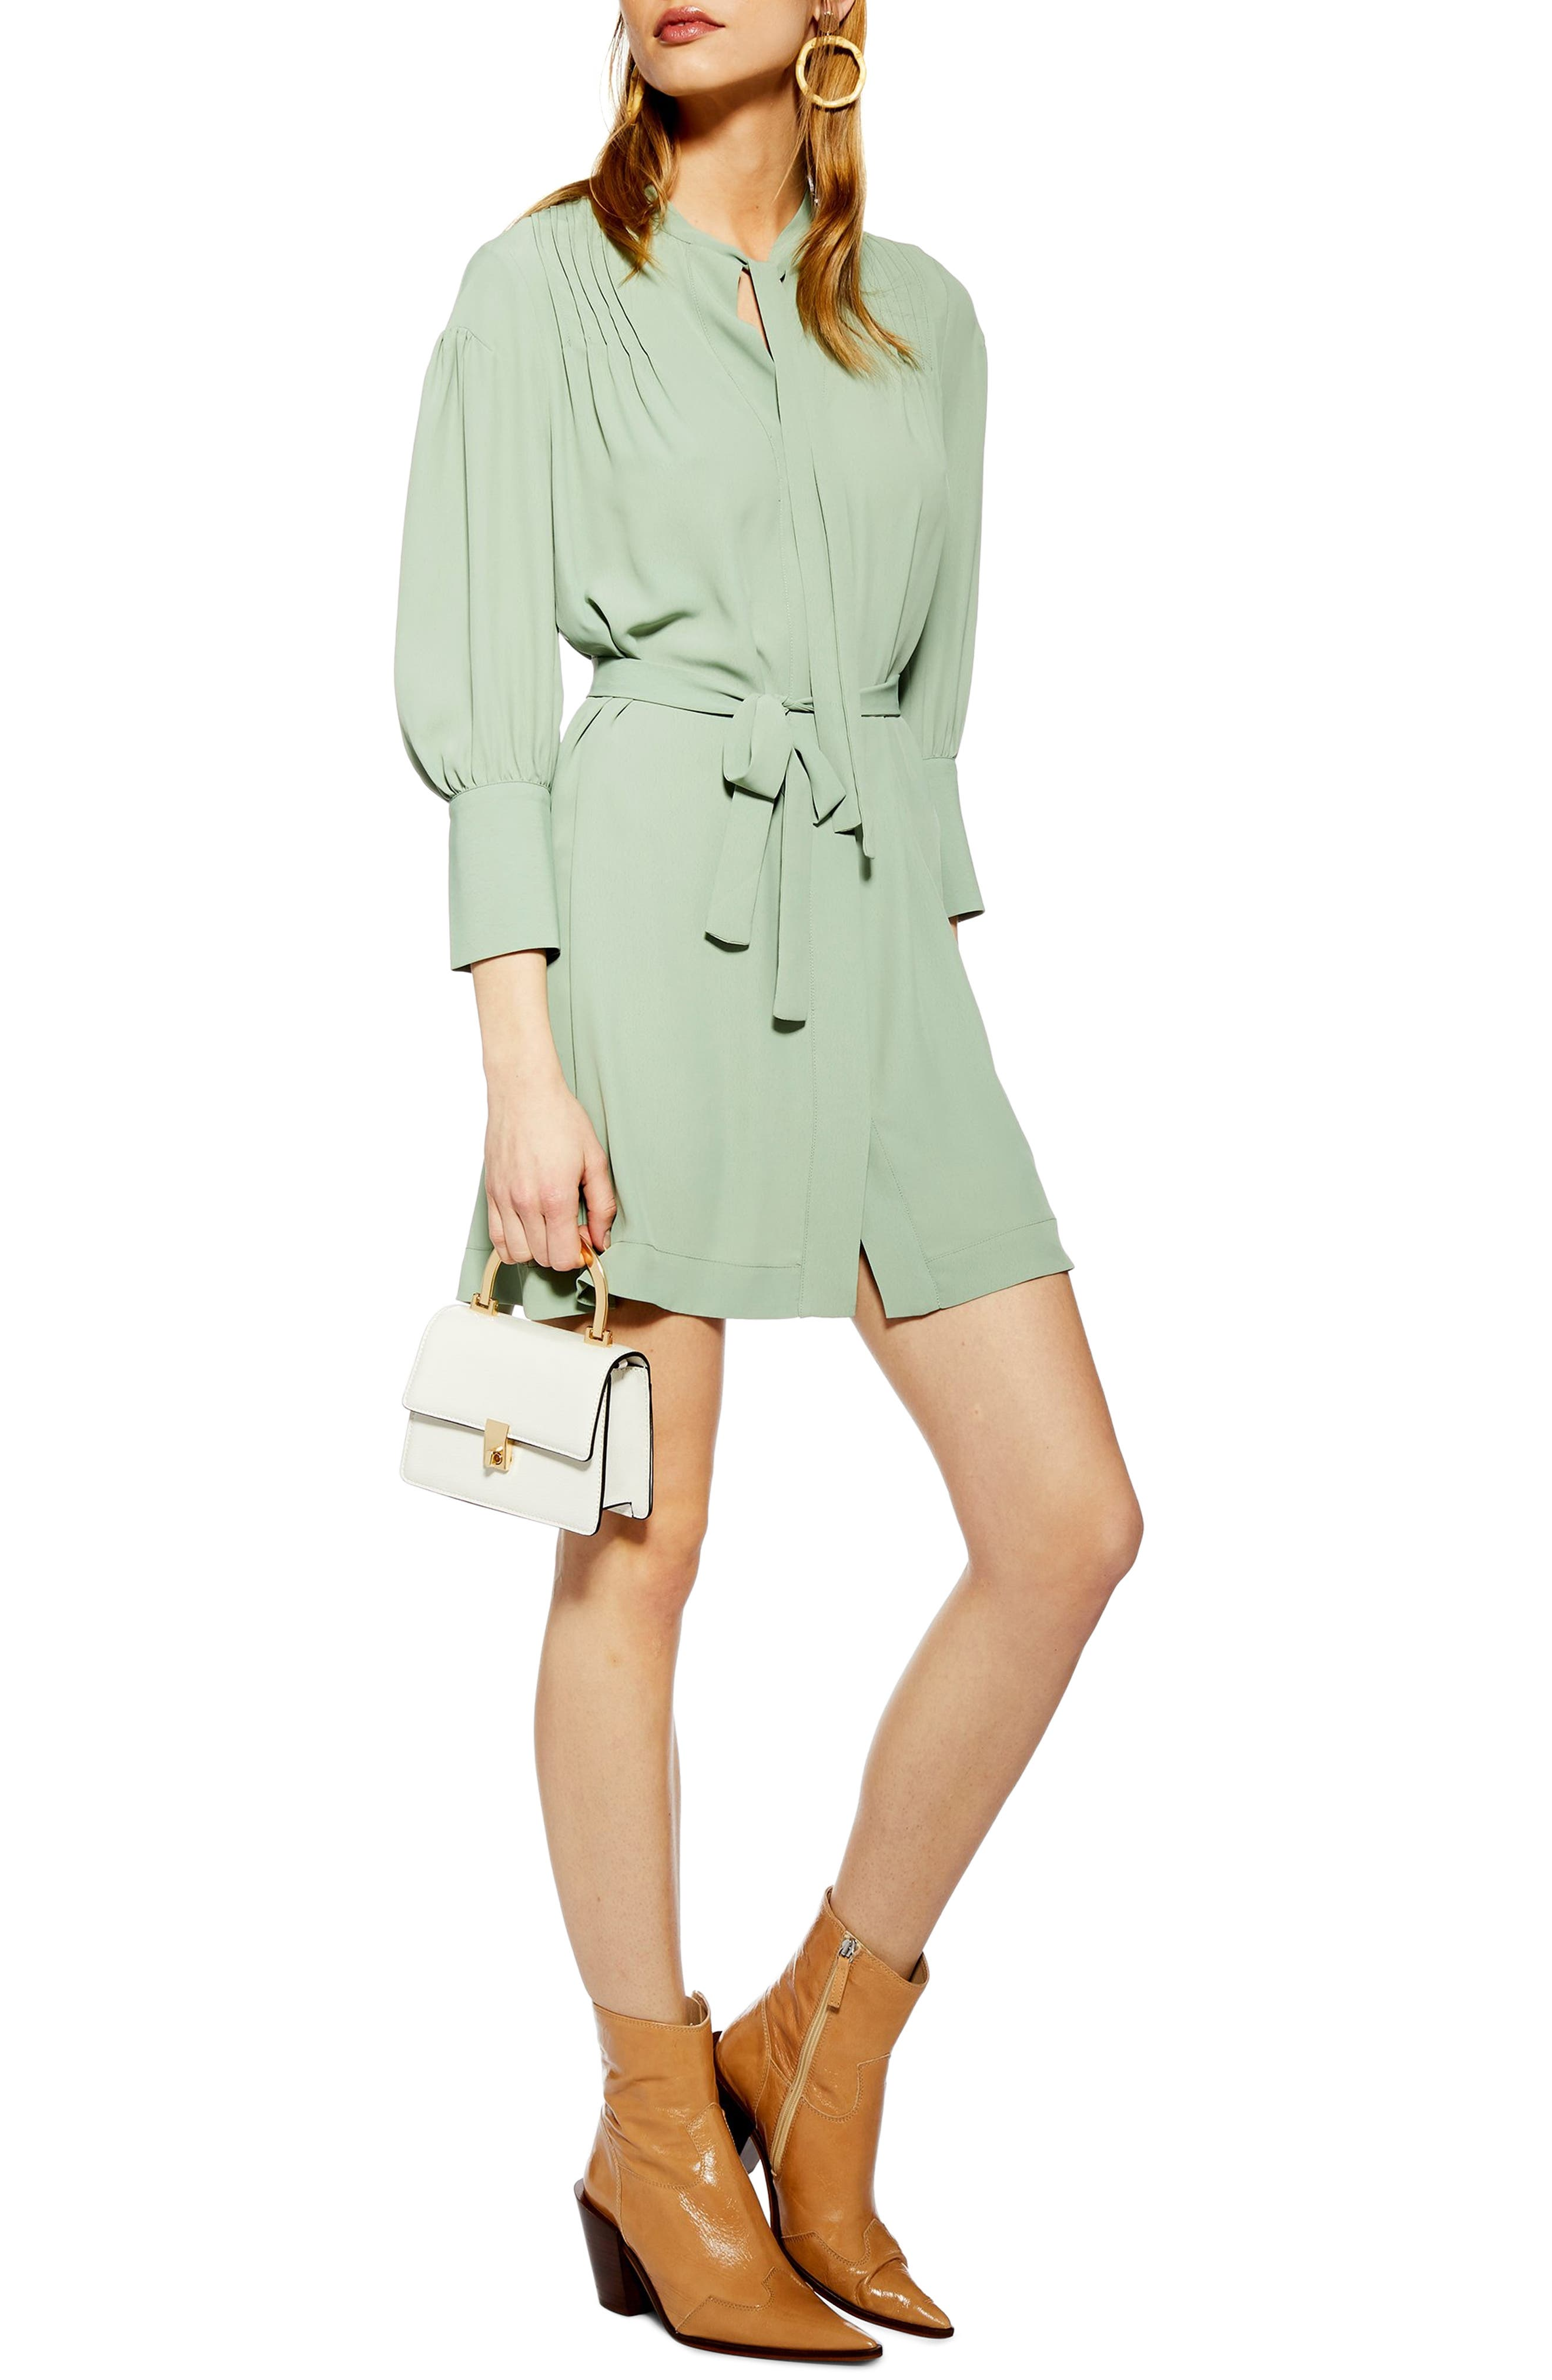 Topshop Pintuck Belted Minidress, US (fits like 14) - Green